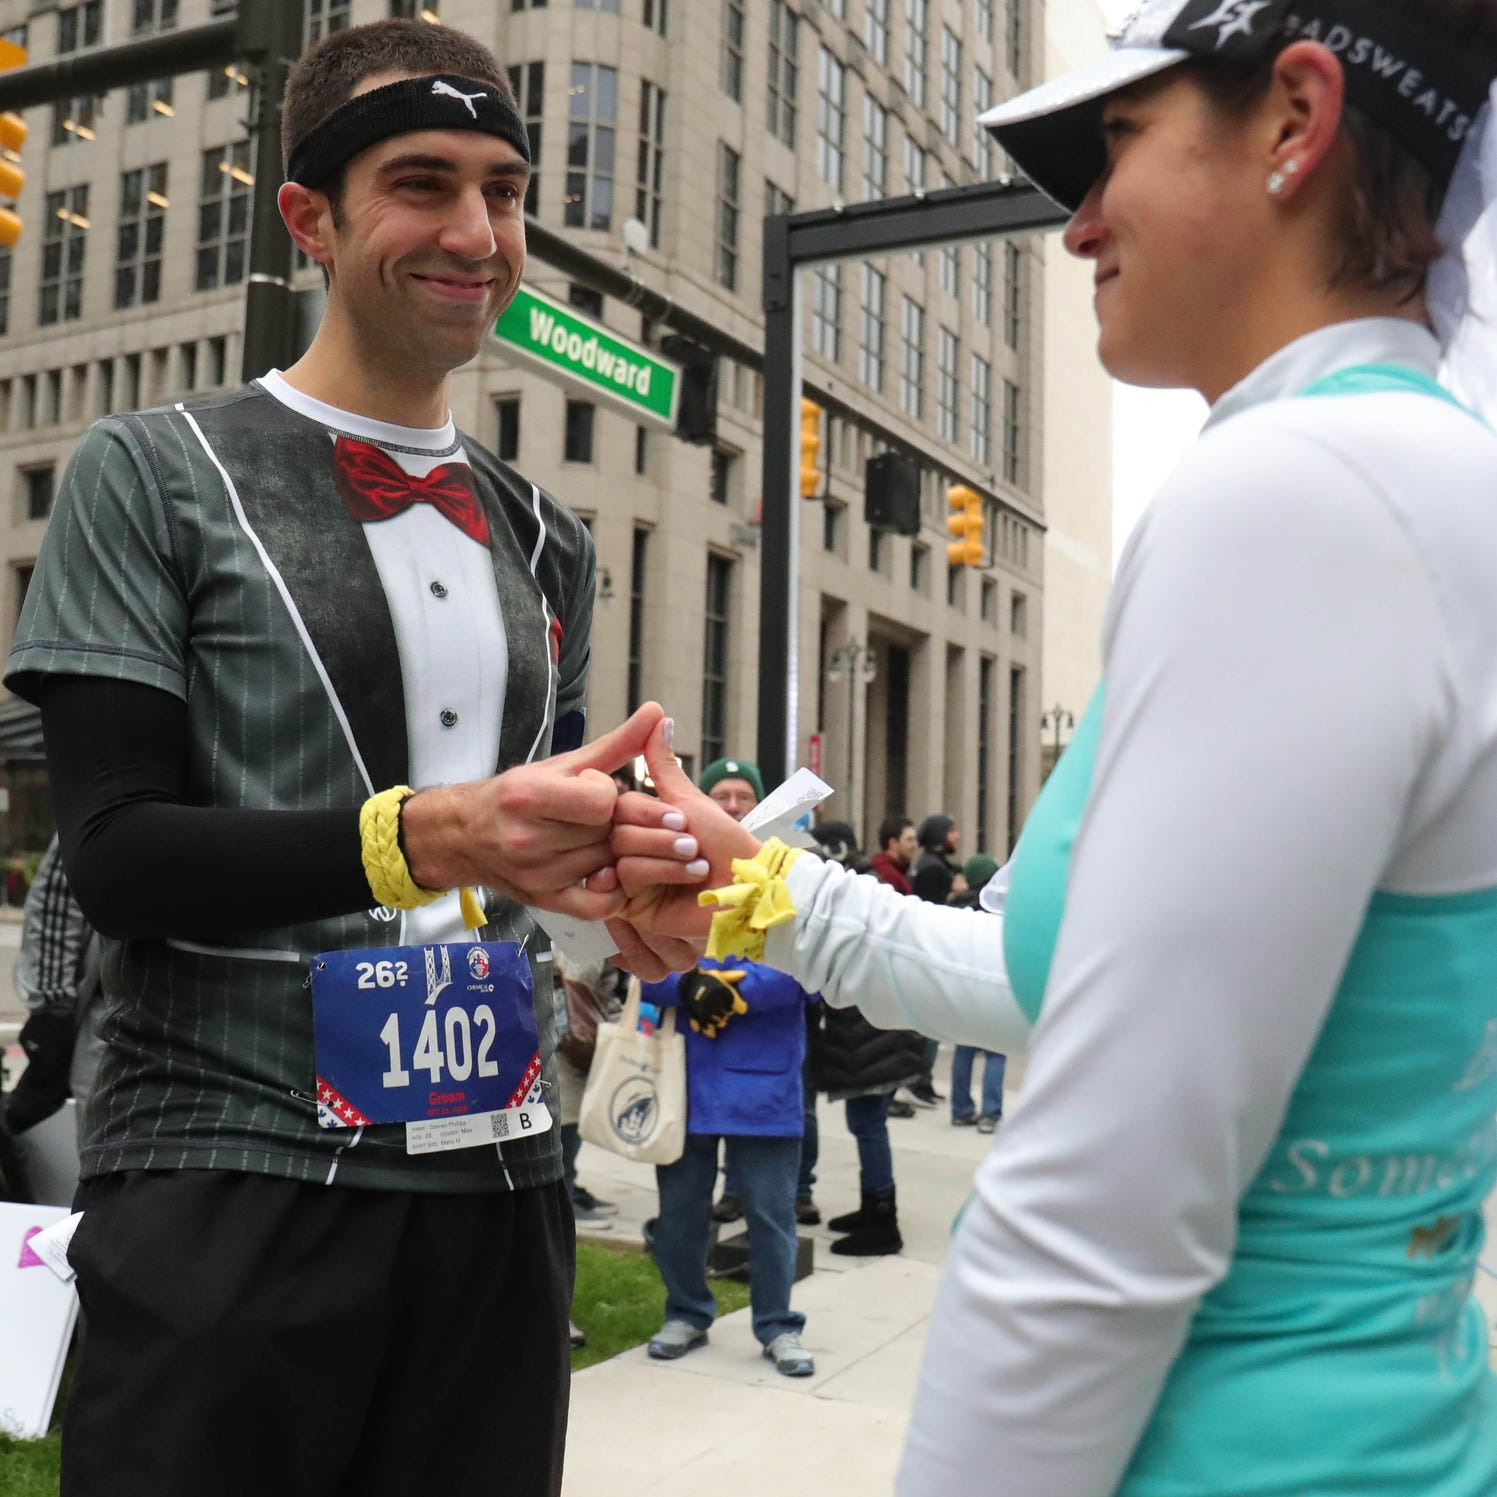 Take a vow: Detroit Marathon runners marry during the race